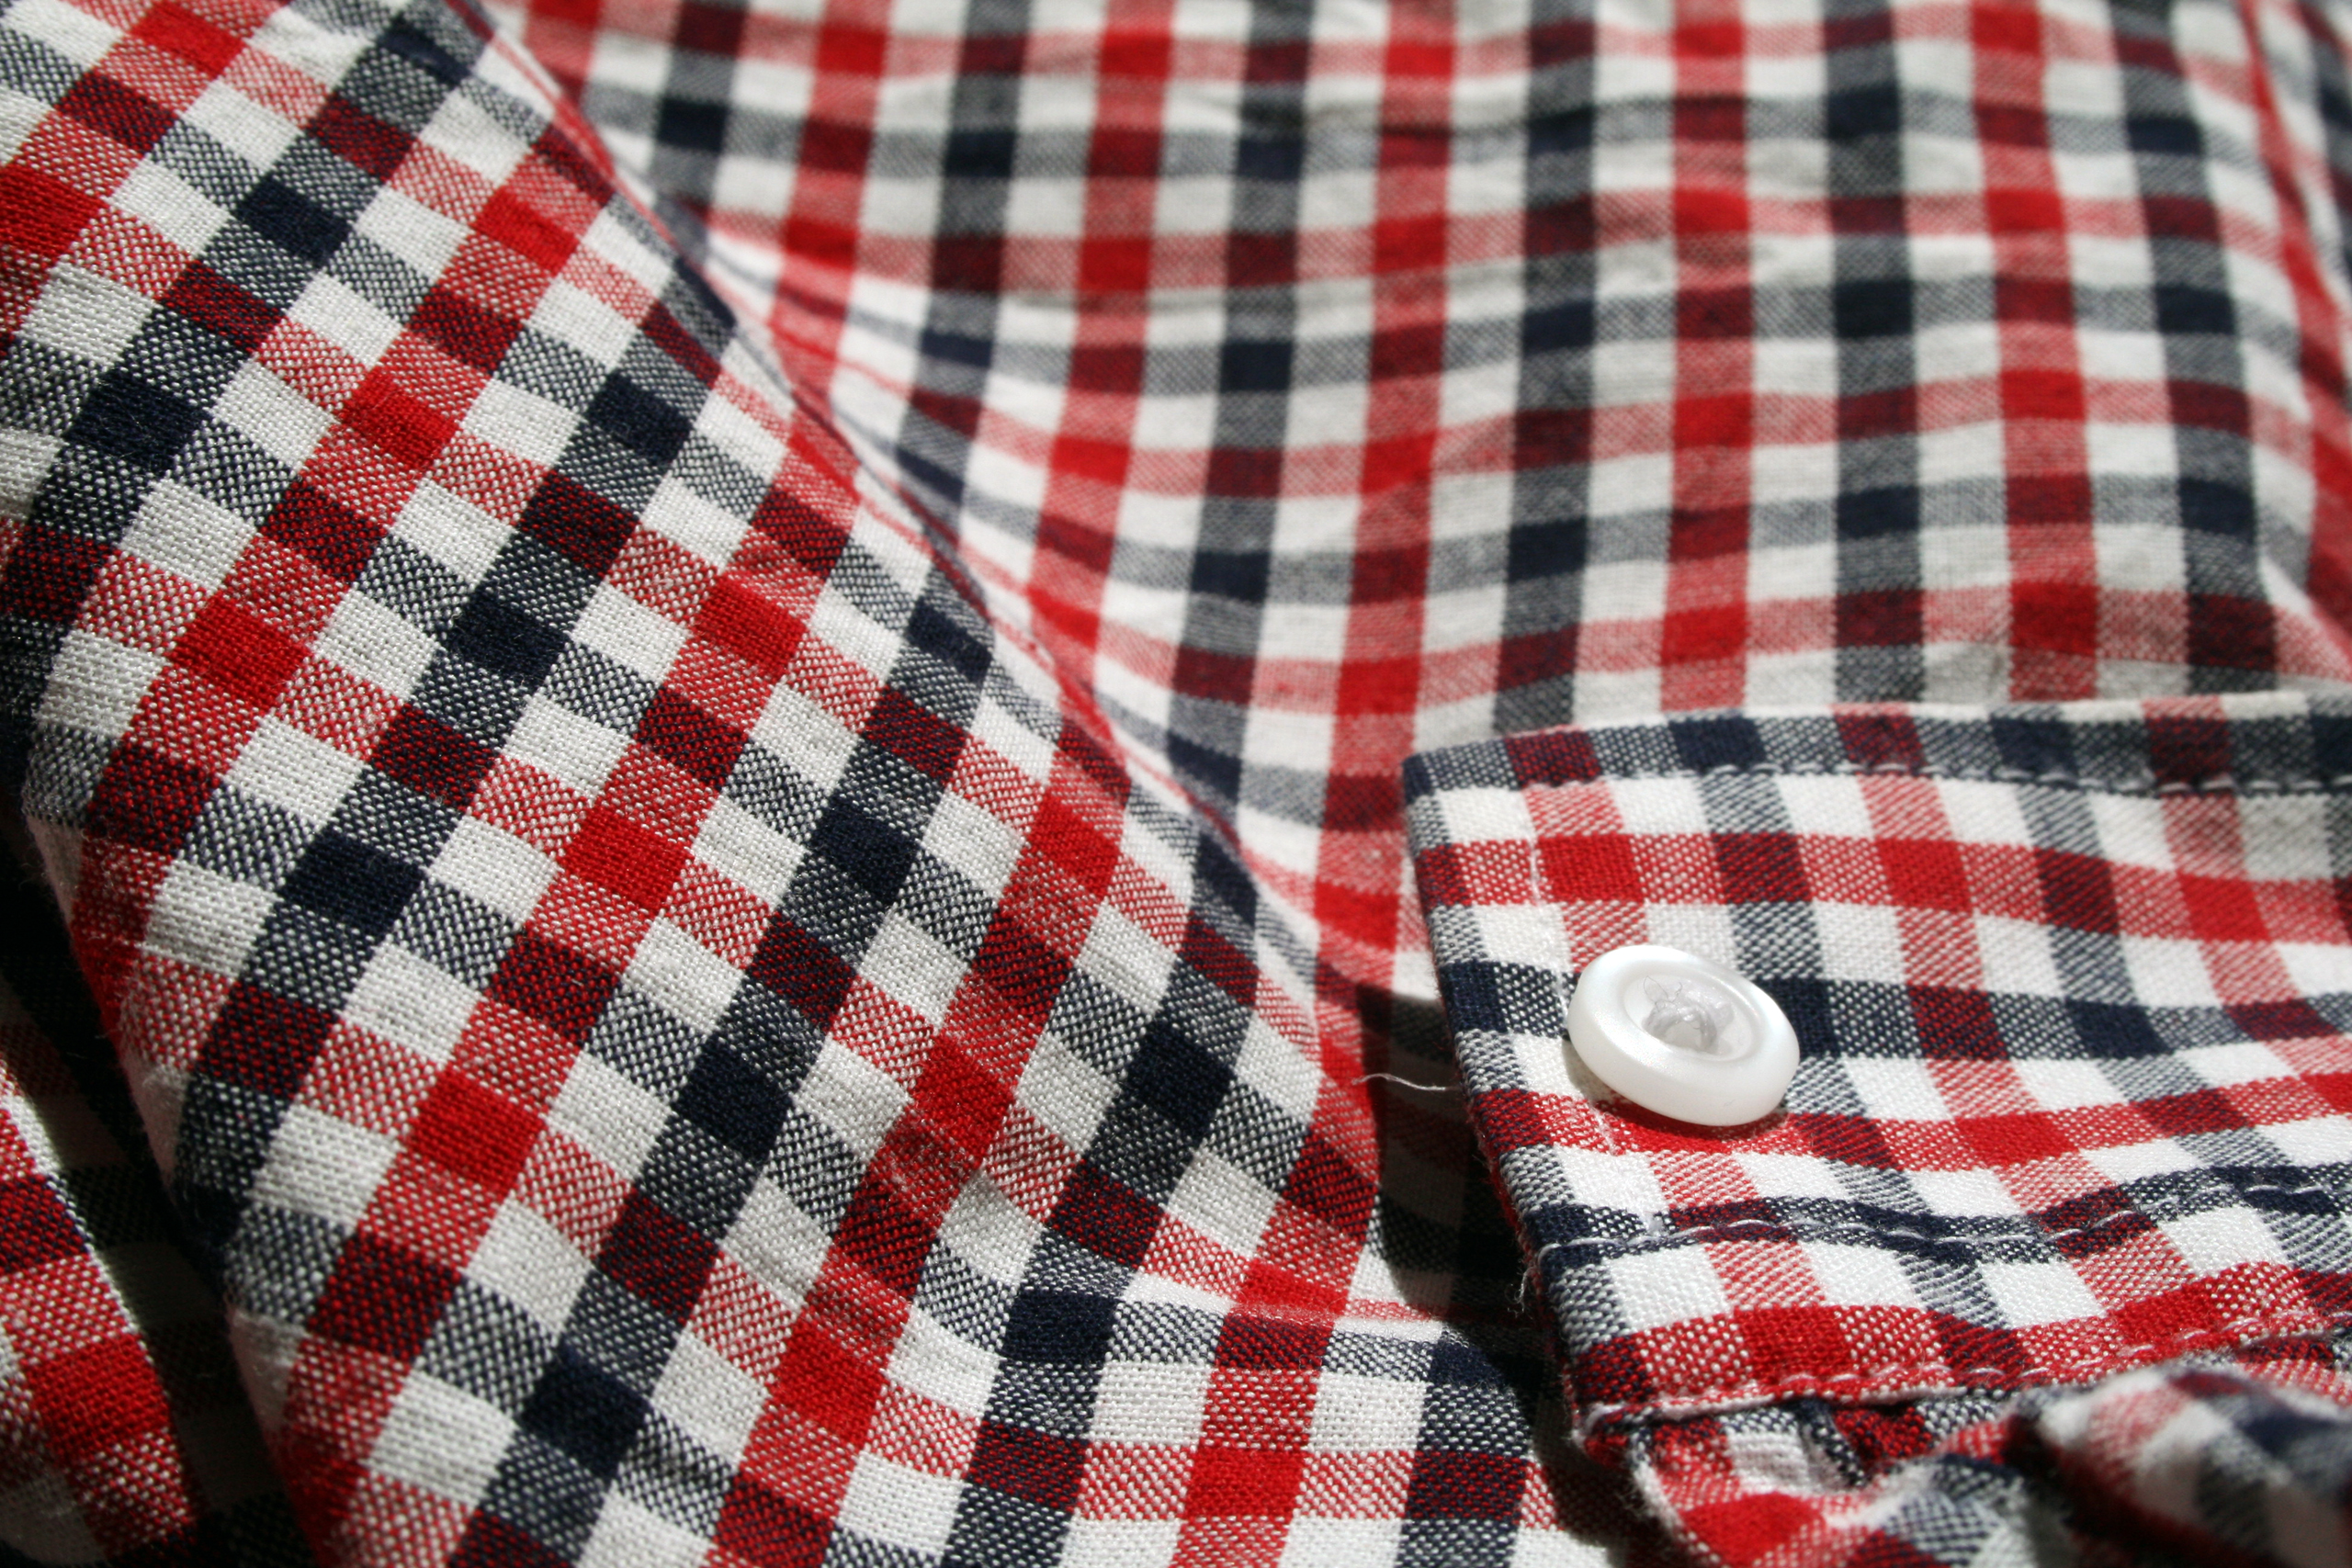 Pocket Protectors and Plaid